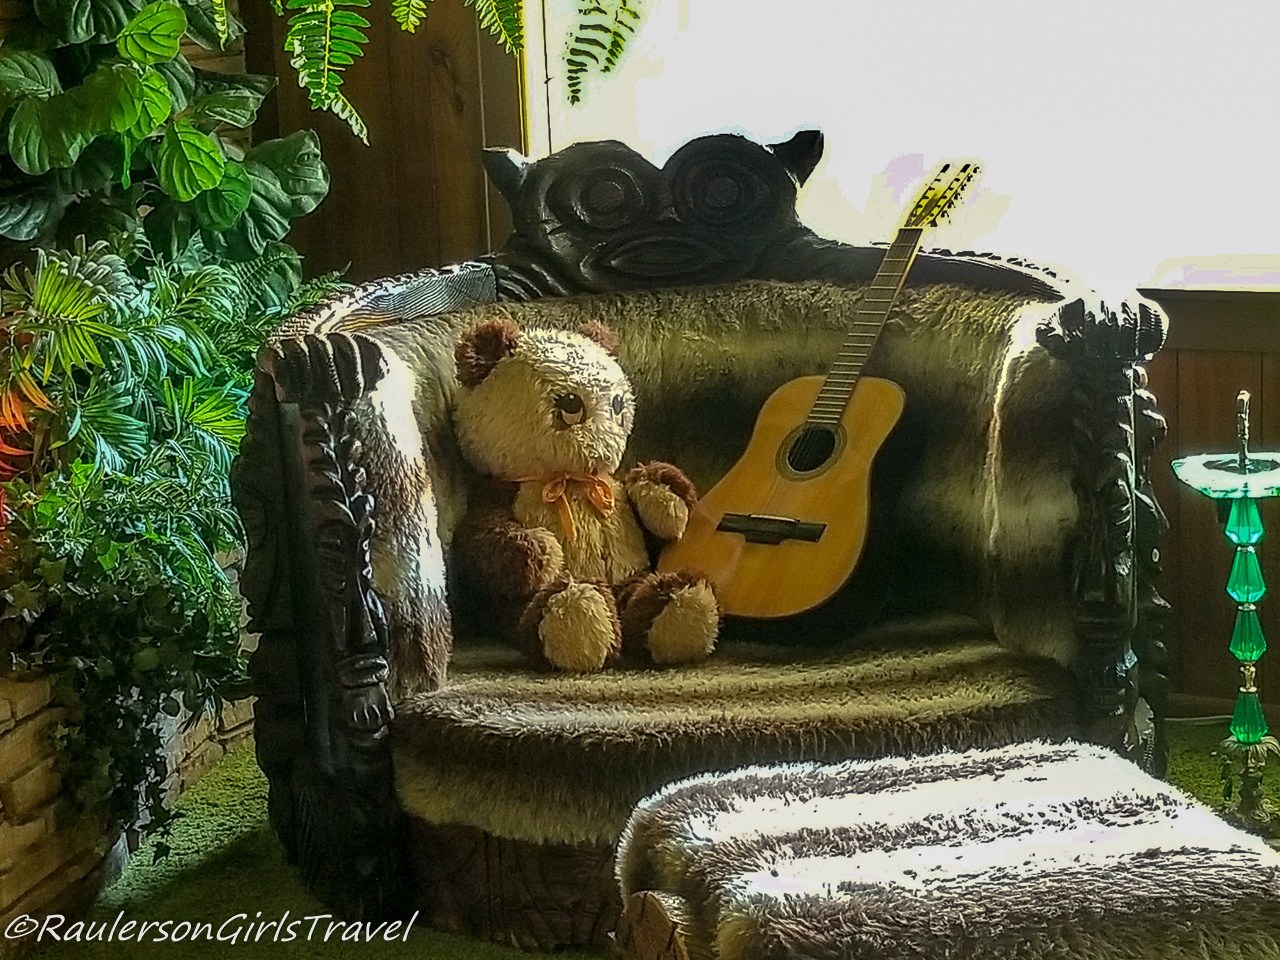 Teddy Bear and Guitar in the Jungle Room